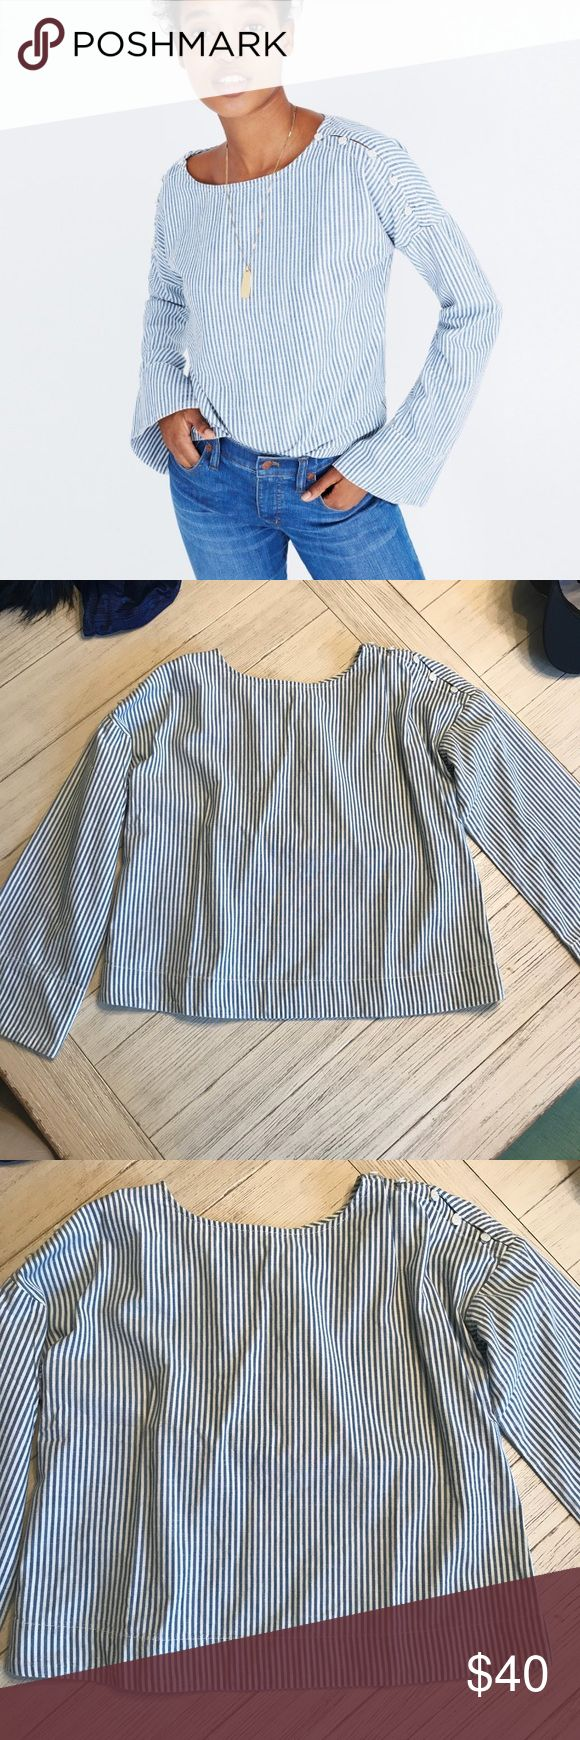 Convertible Cold Shoulder Chambray NWT!  Layer it now or save it for the spring!  Classic striped Chambray with button detailed shoulders for a twist.  Paired with skinnies or white pant would be perfection. Madewell Tops Blouses